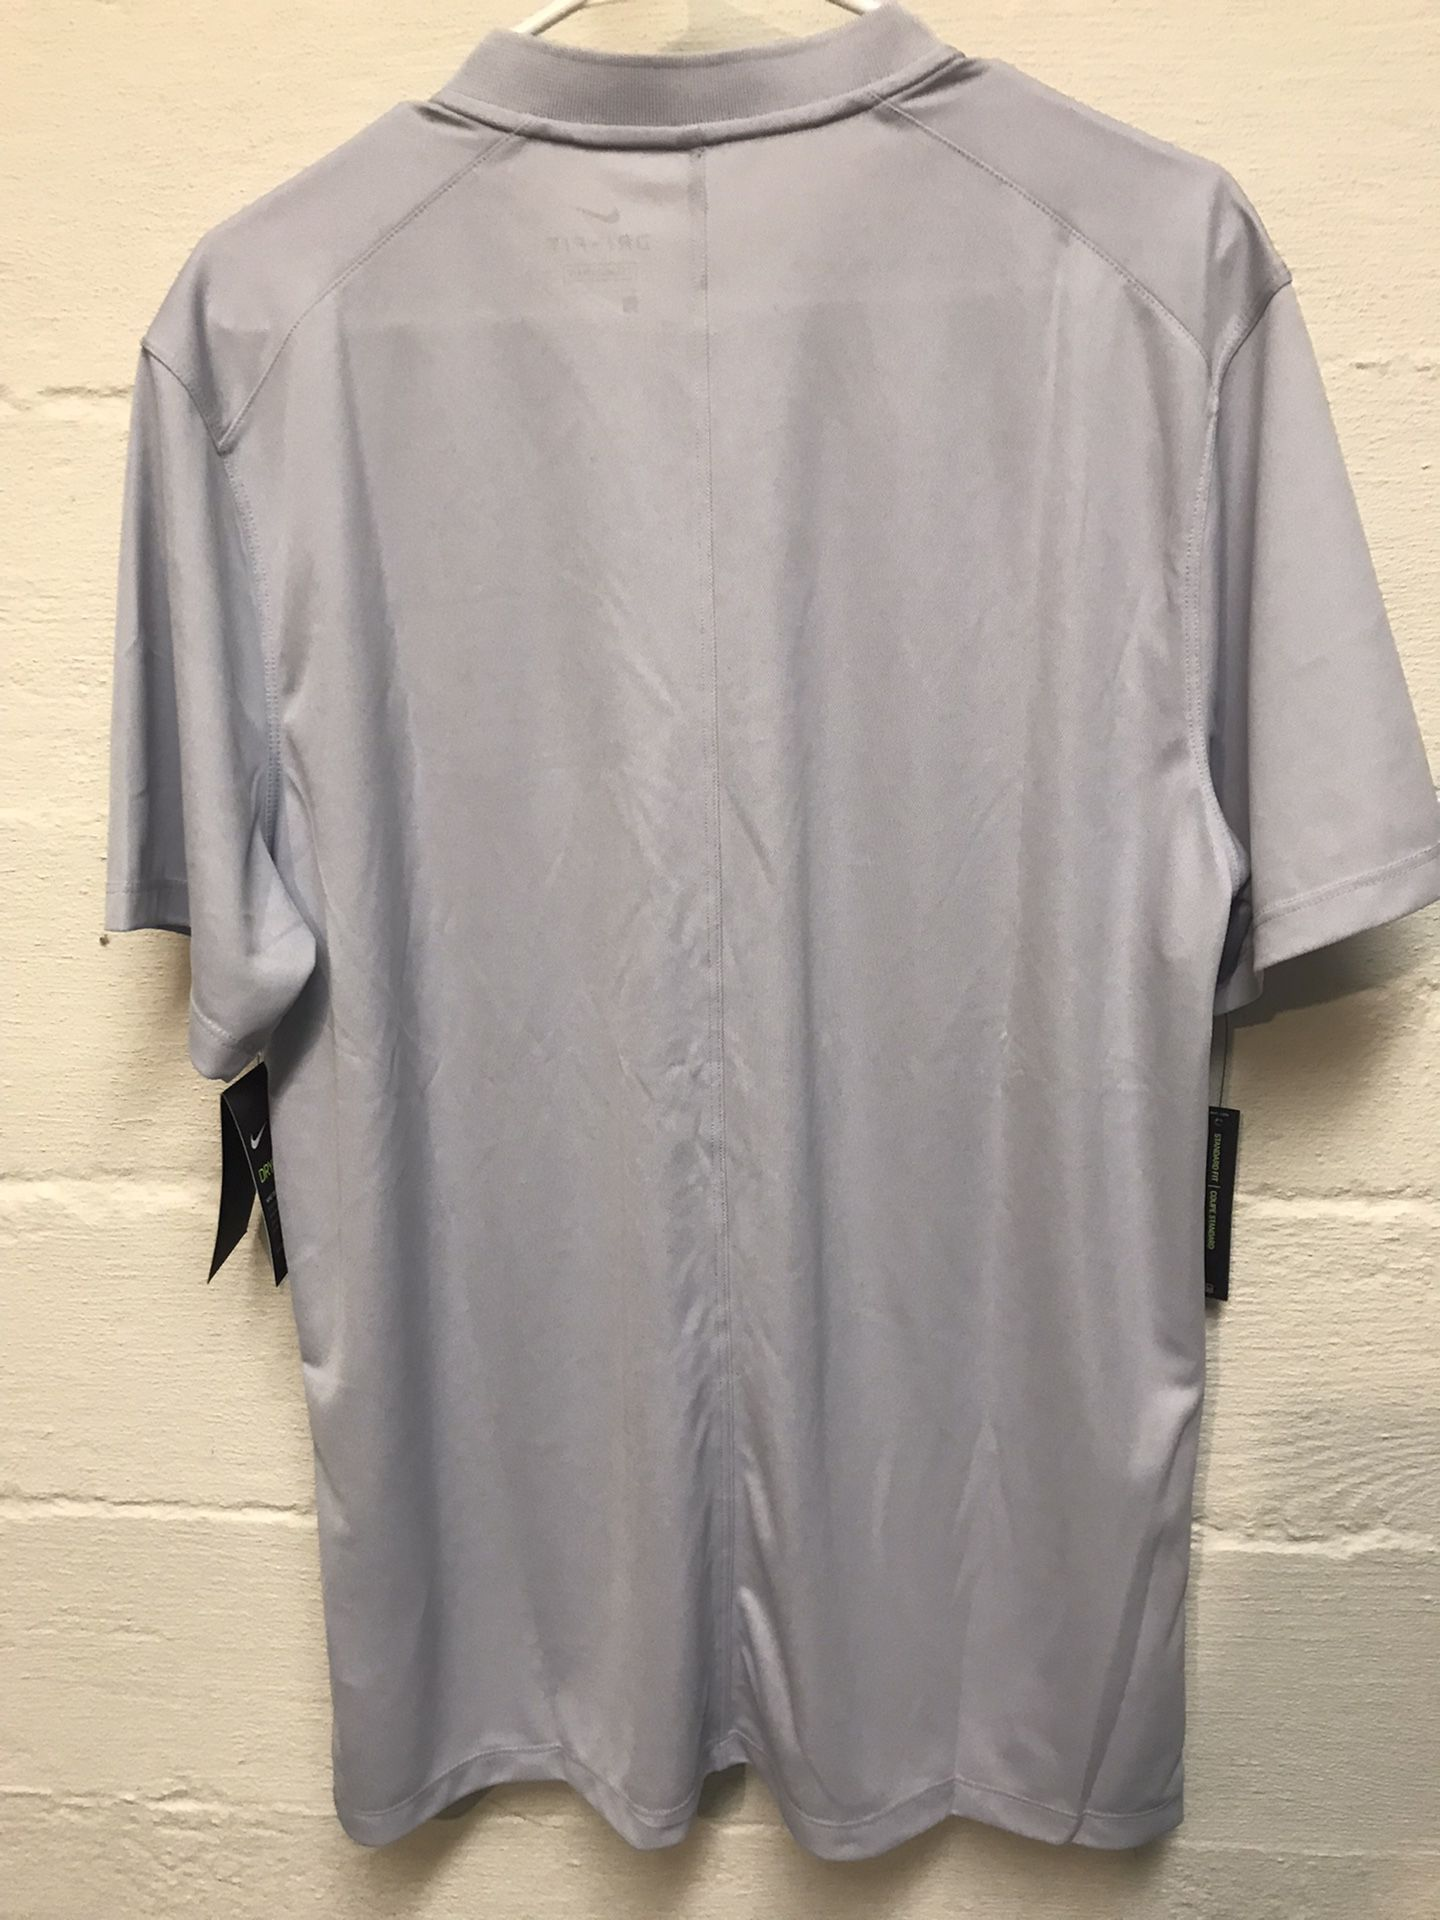 Nike Dry Victory Blade Golf Polo New Large